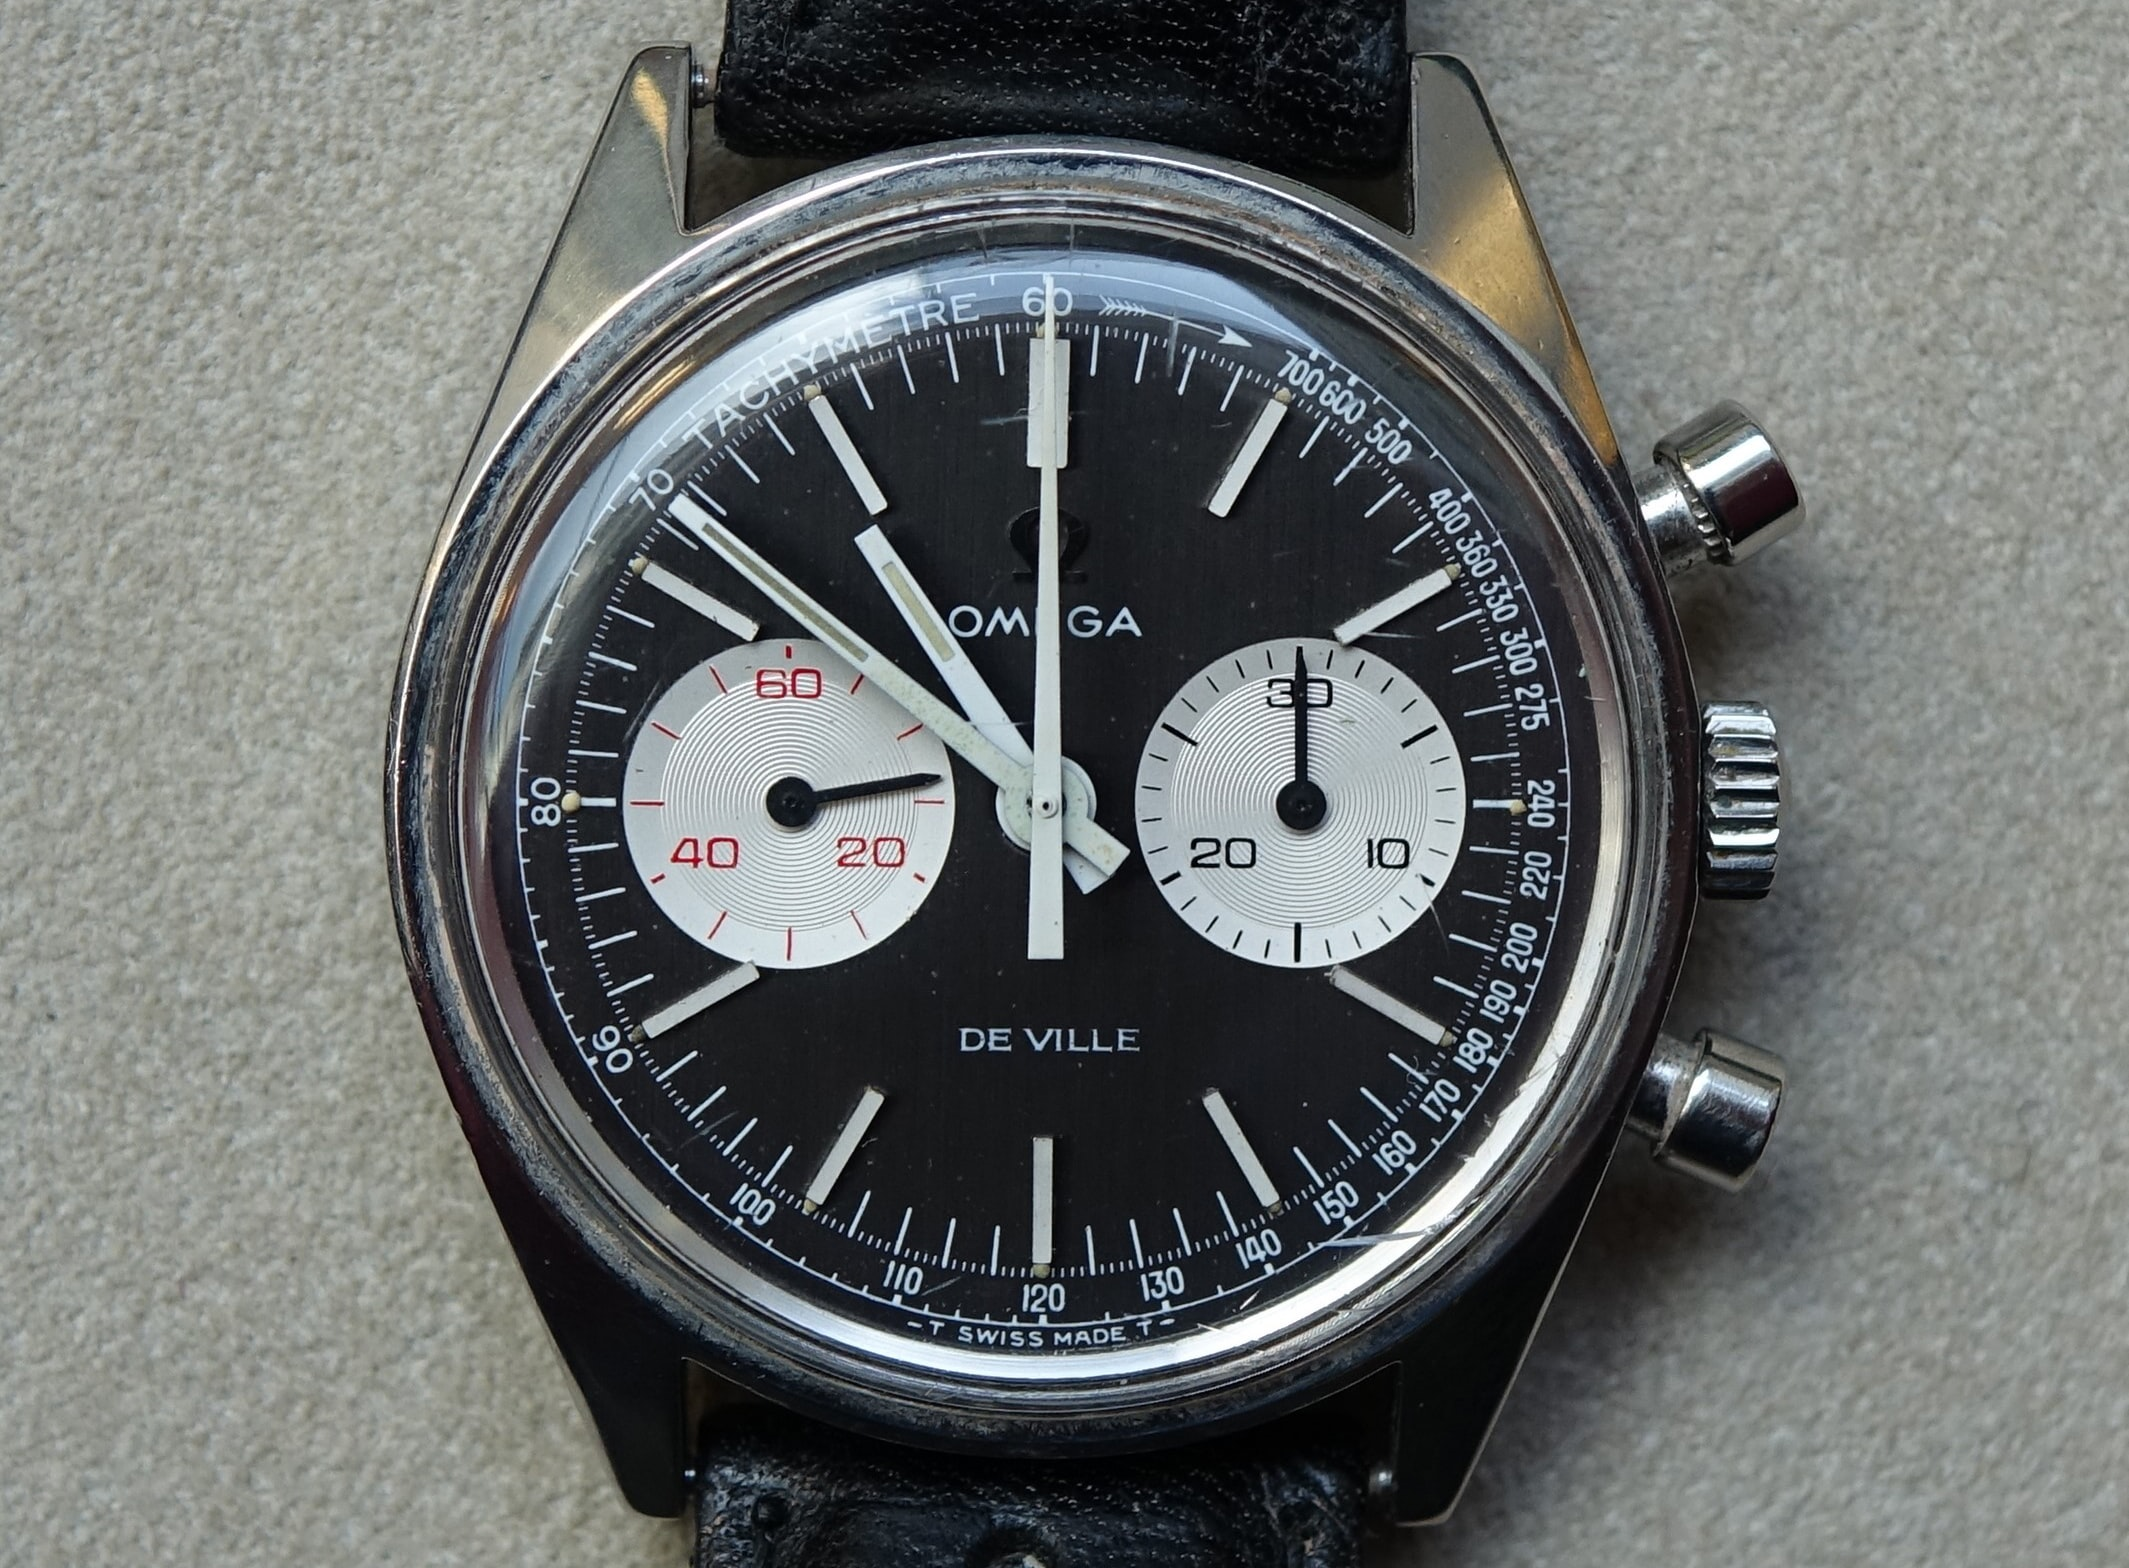 Omega DeVille Chronograph Reference 145.017 First Look: Five Unexpected Vintage Lots From The Upcoming Watches Of Knightsbridge Auction First Look: Five Unexpected Vintage Lots From The Upcoming Watches Of Knightsbridge Auction 1